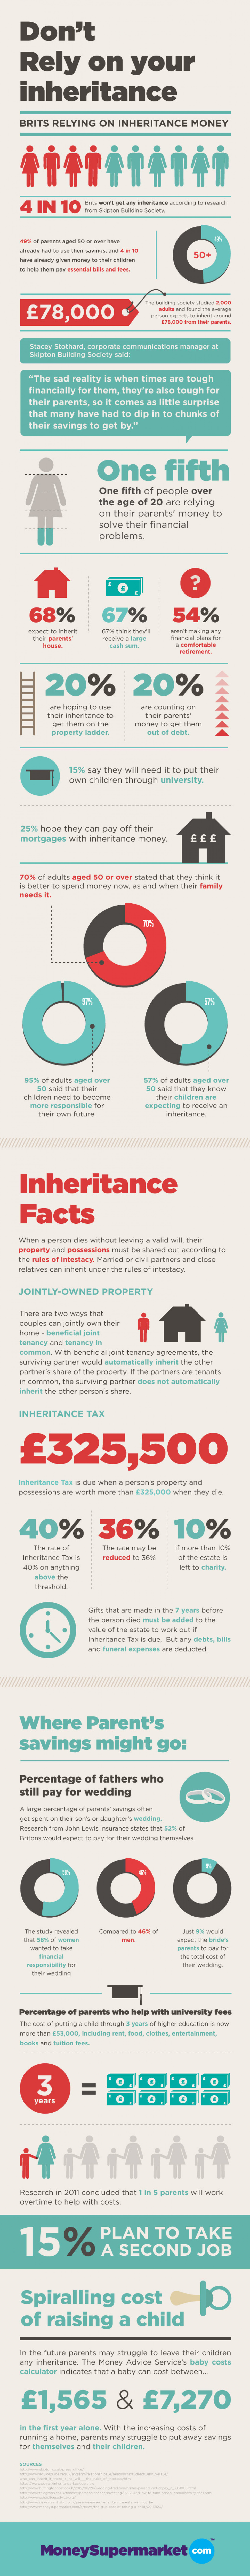 Don't rely on your inheritance money Infographic